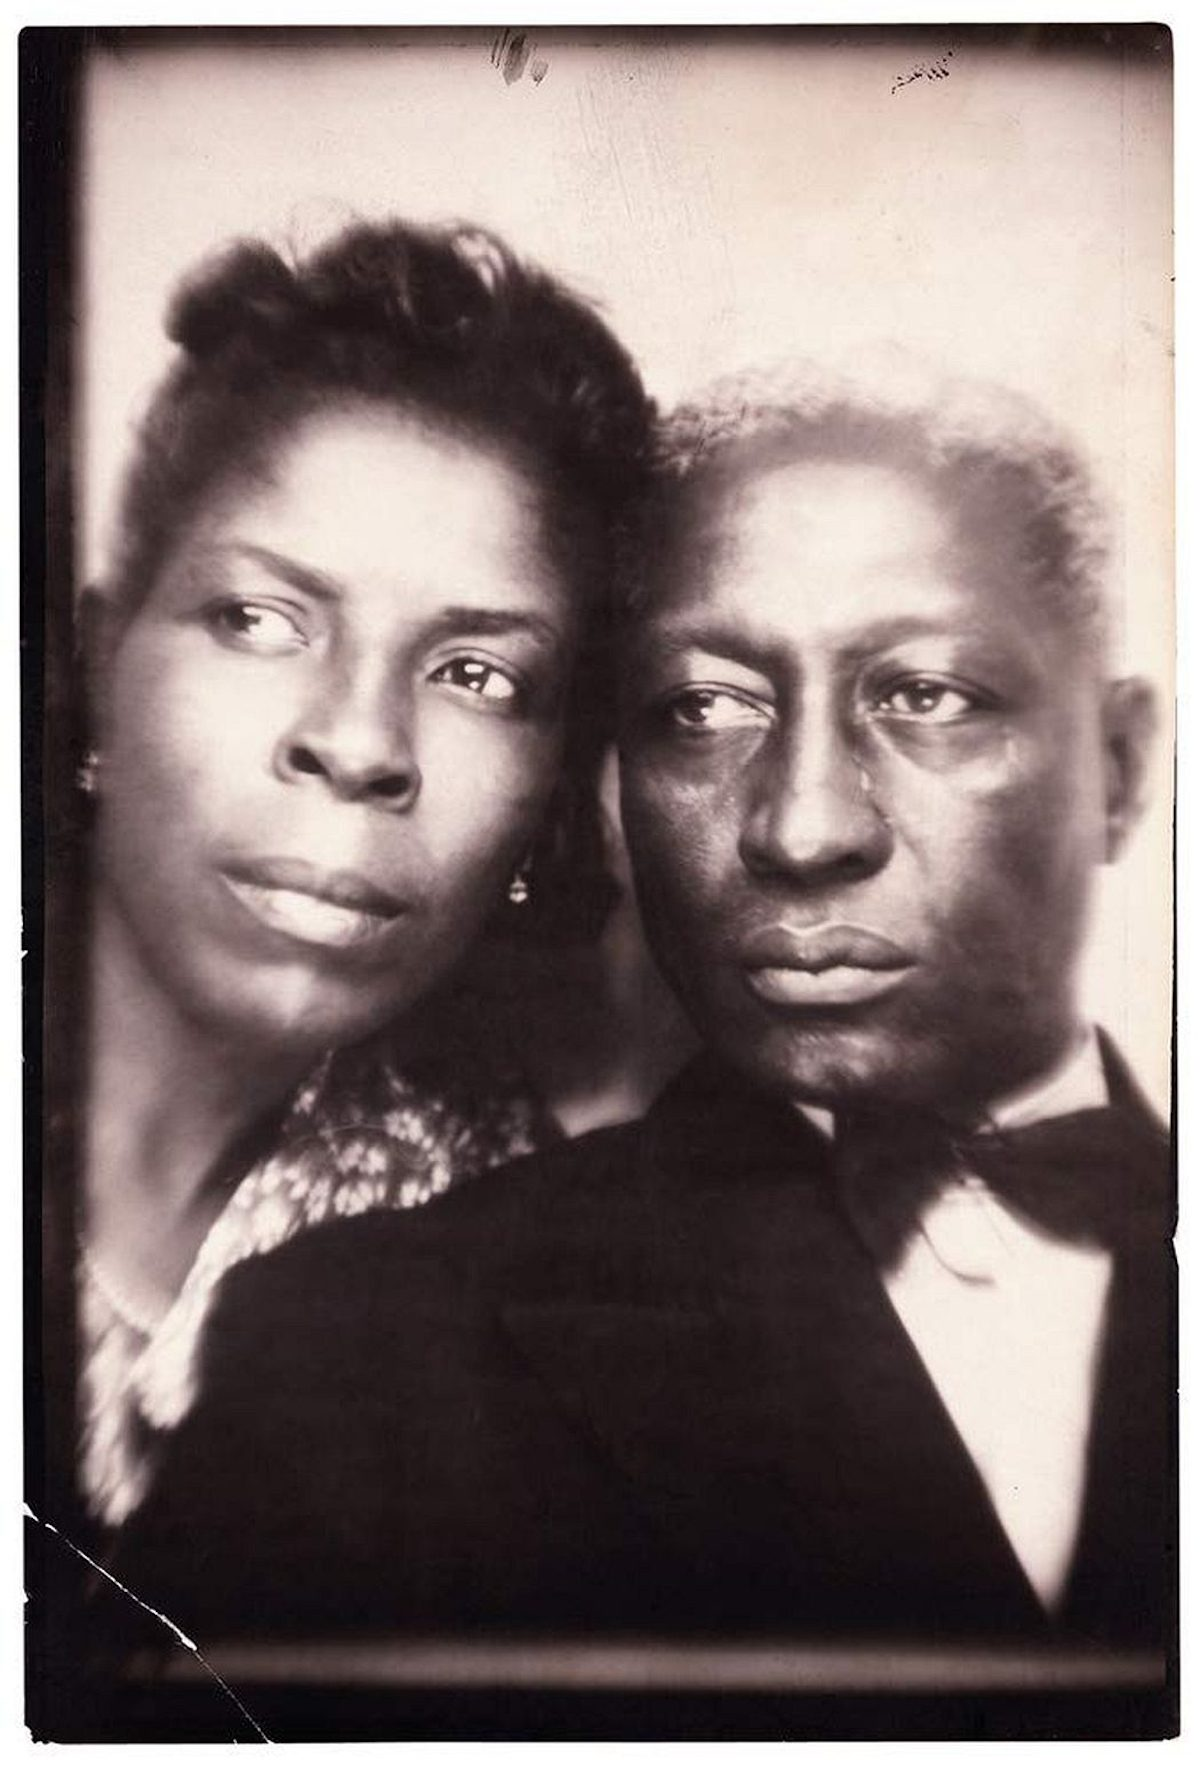 Portrait of Lead Belly and his wife, Martha